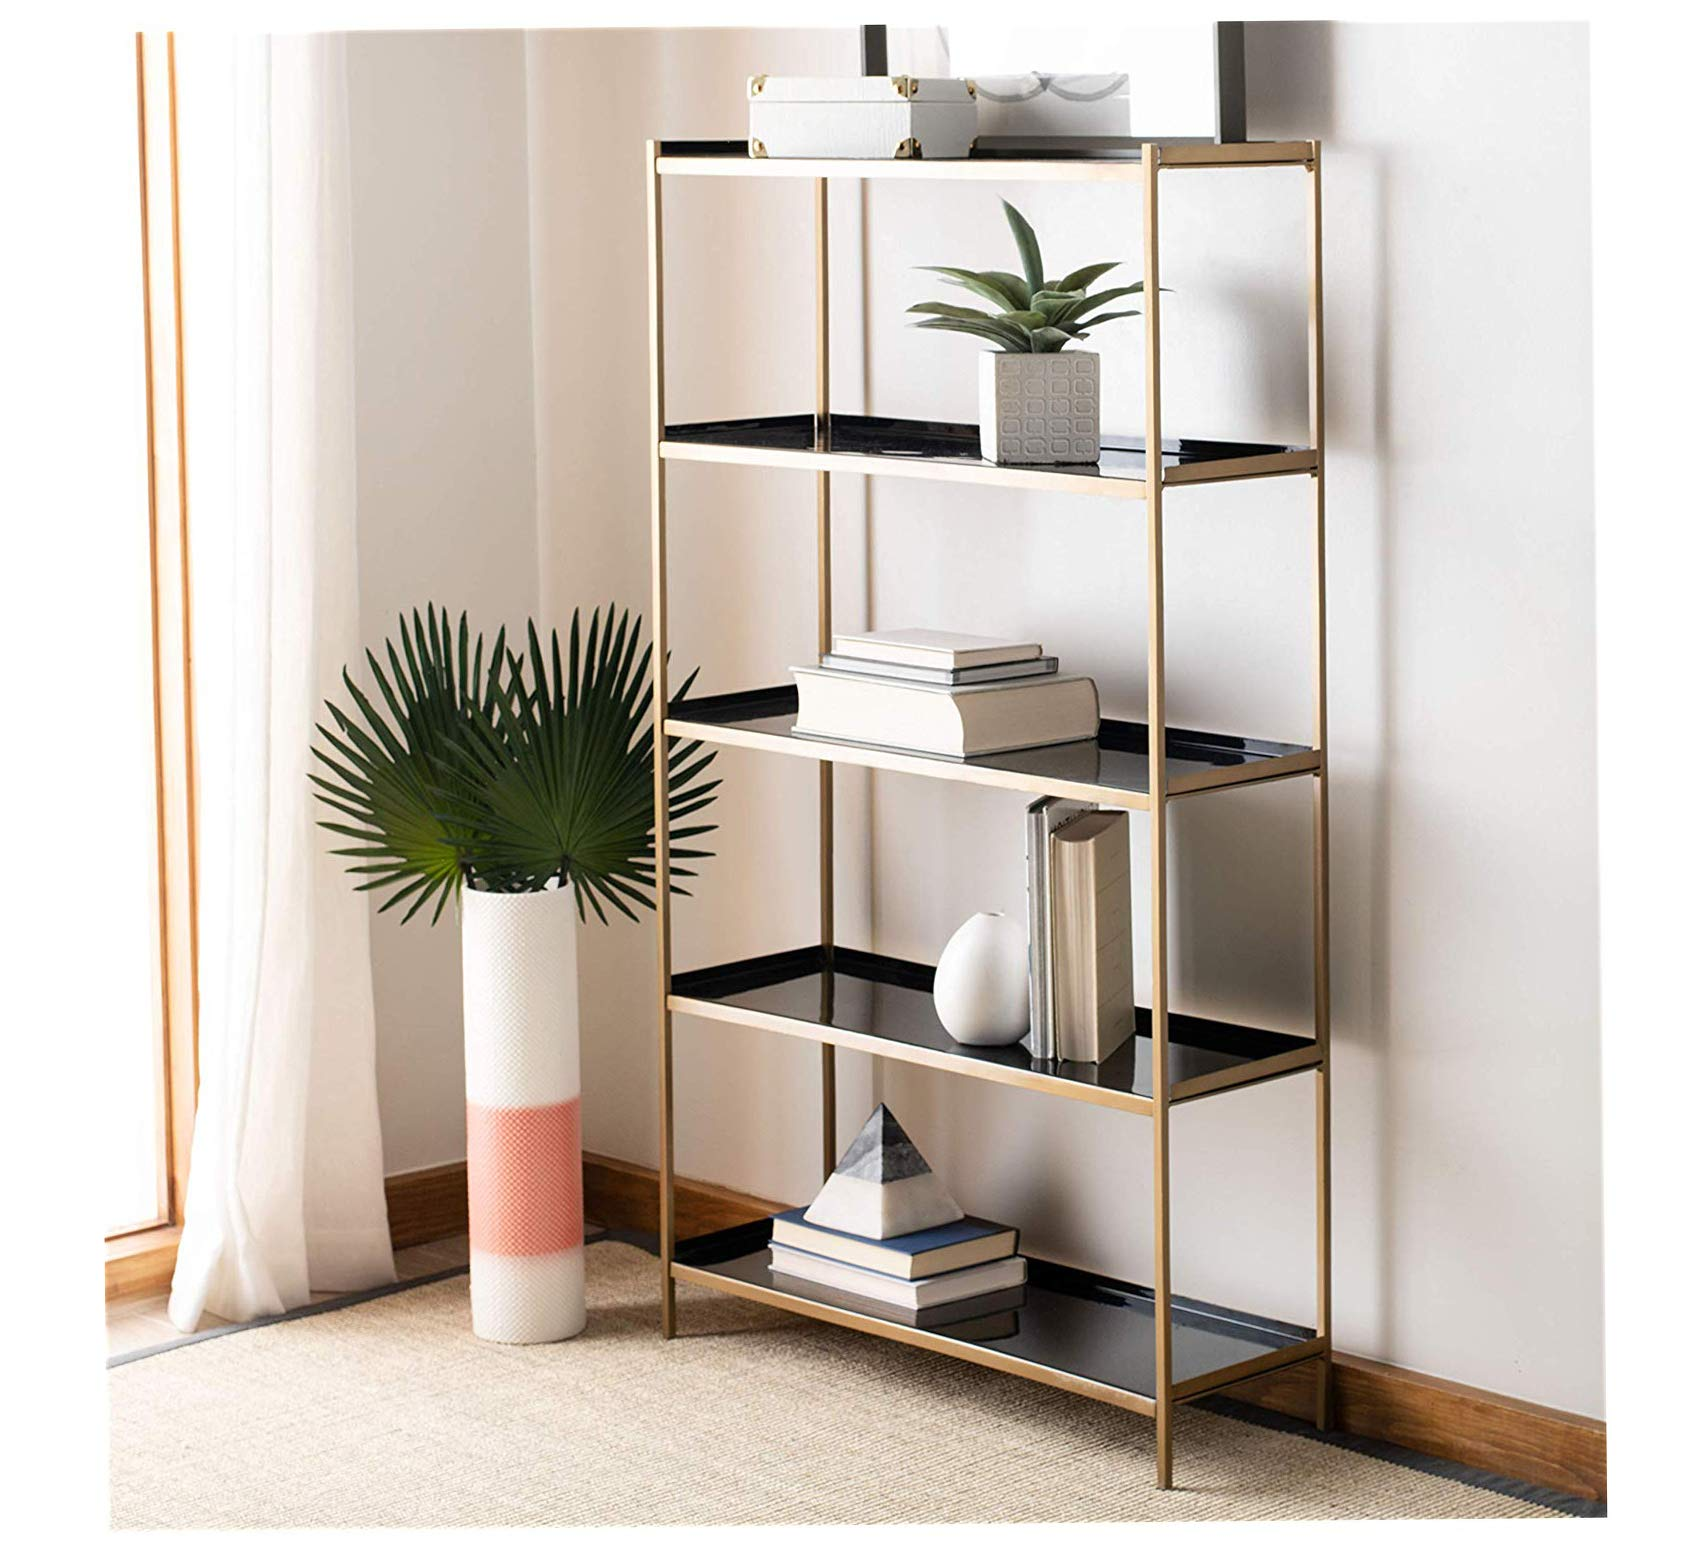 Wood & Style Furniture Justine Modern Black and Brass 5-Tier Etageres, 28'' x 10'' x 52'', Home Office Commerial Heavy Duty Strong Décor by Wood & Style